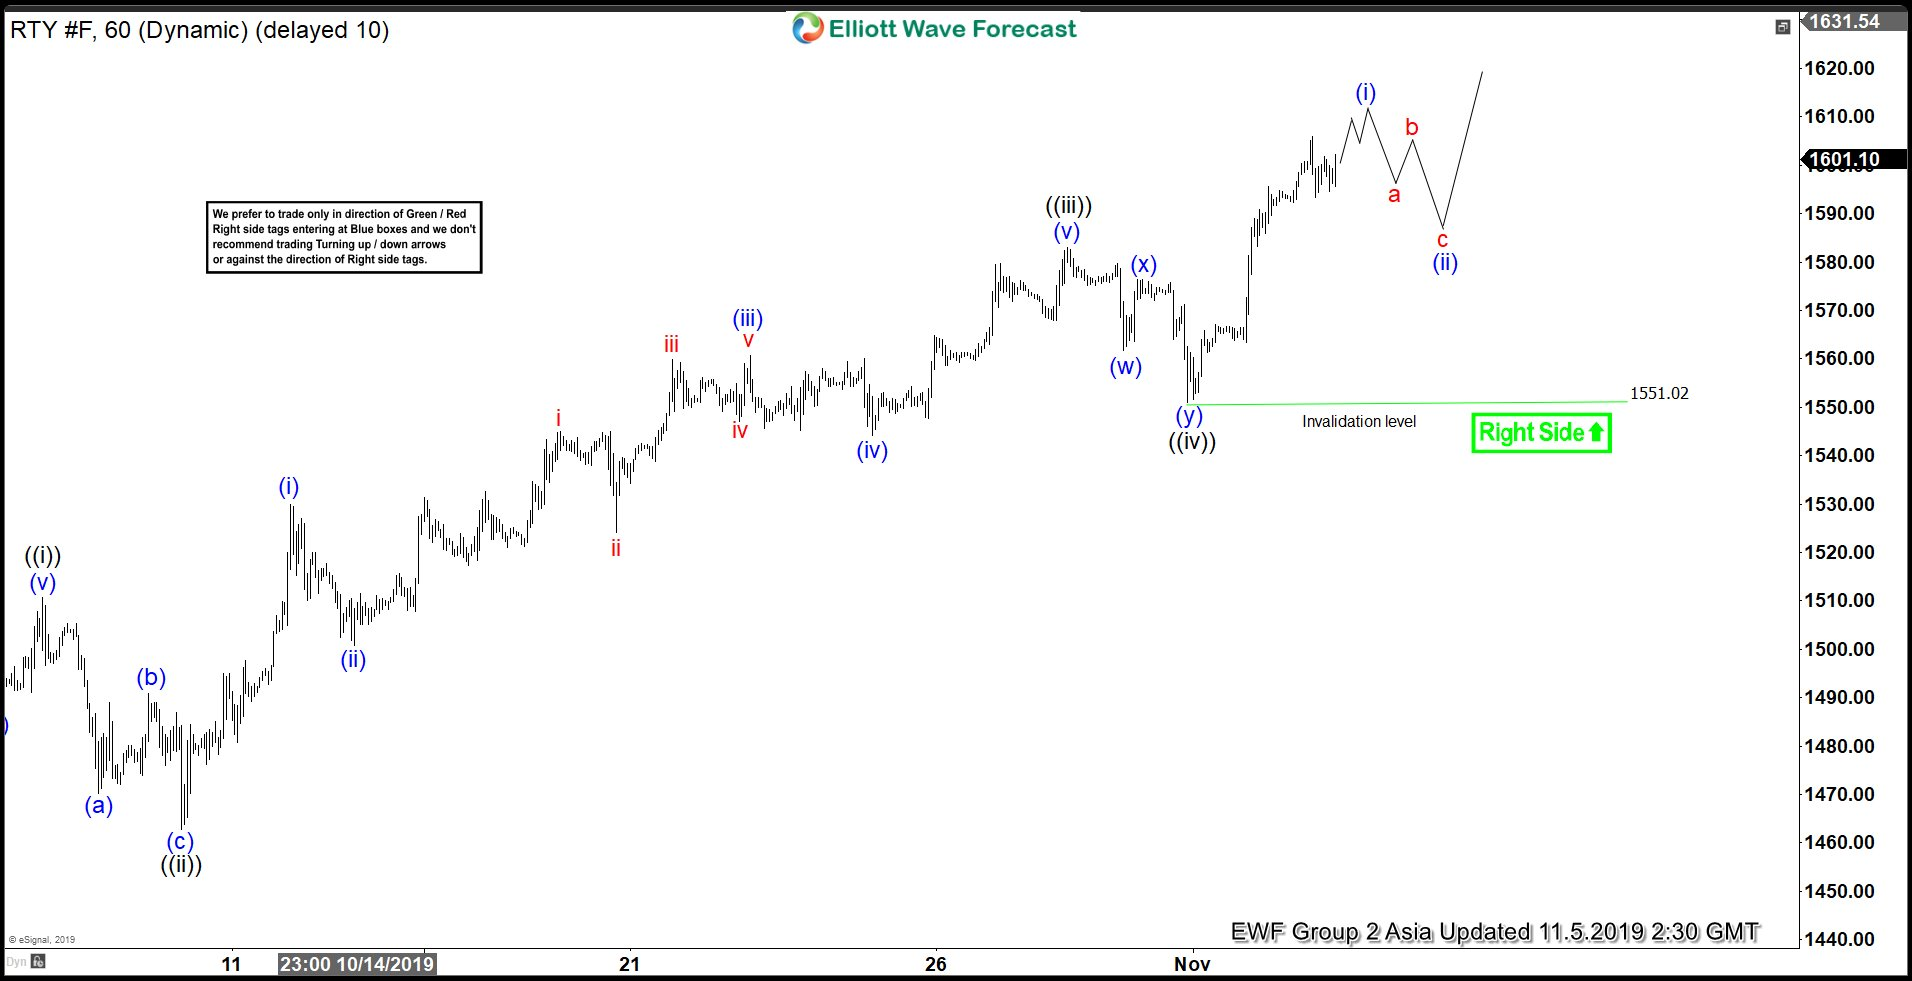 Elliott Wave View: Bullish Outlook in Russell